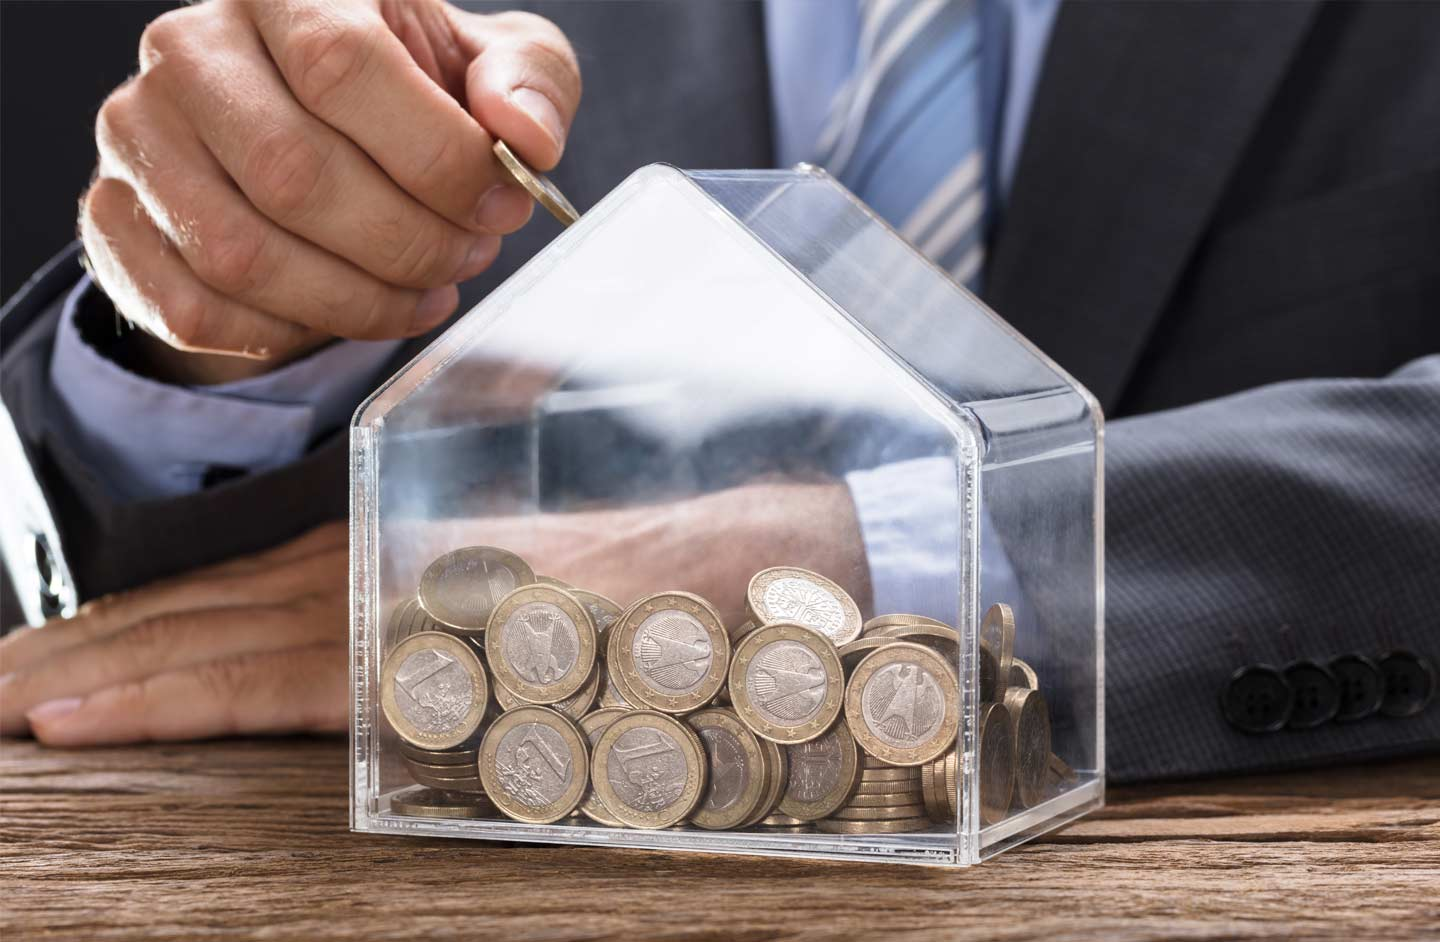 Deposit Protection - Why is it Important to be Legally Compliant?